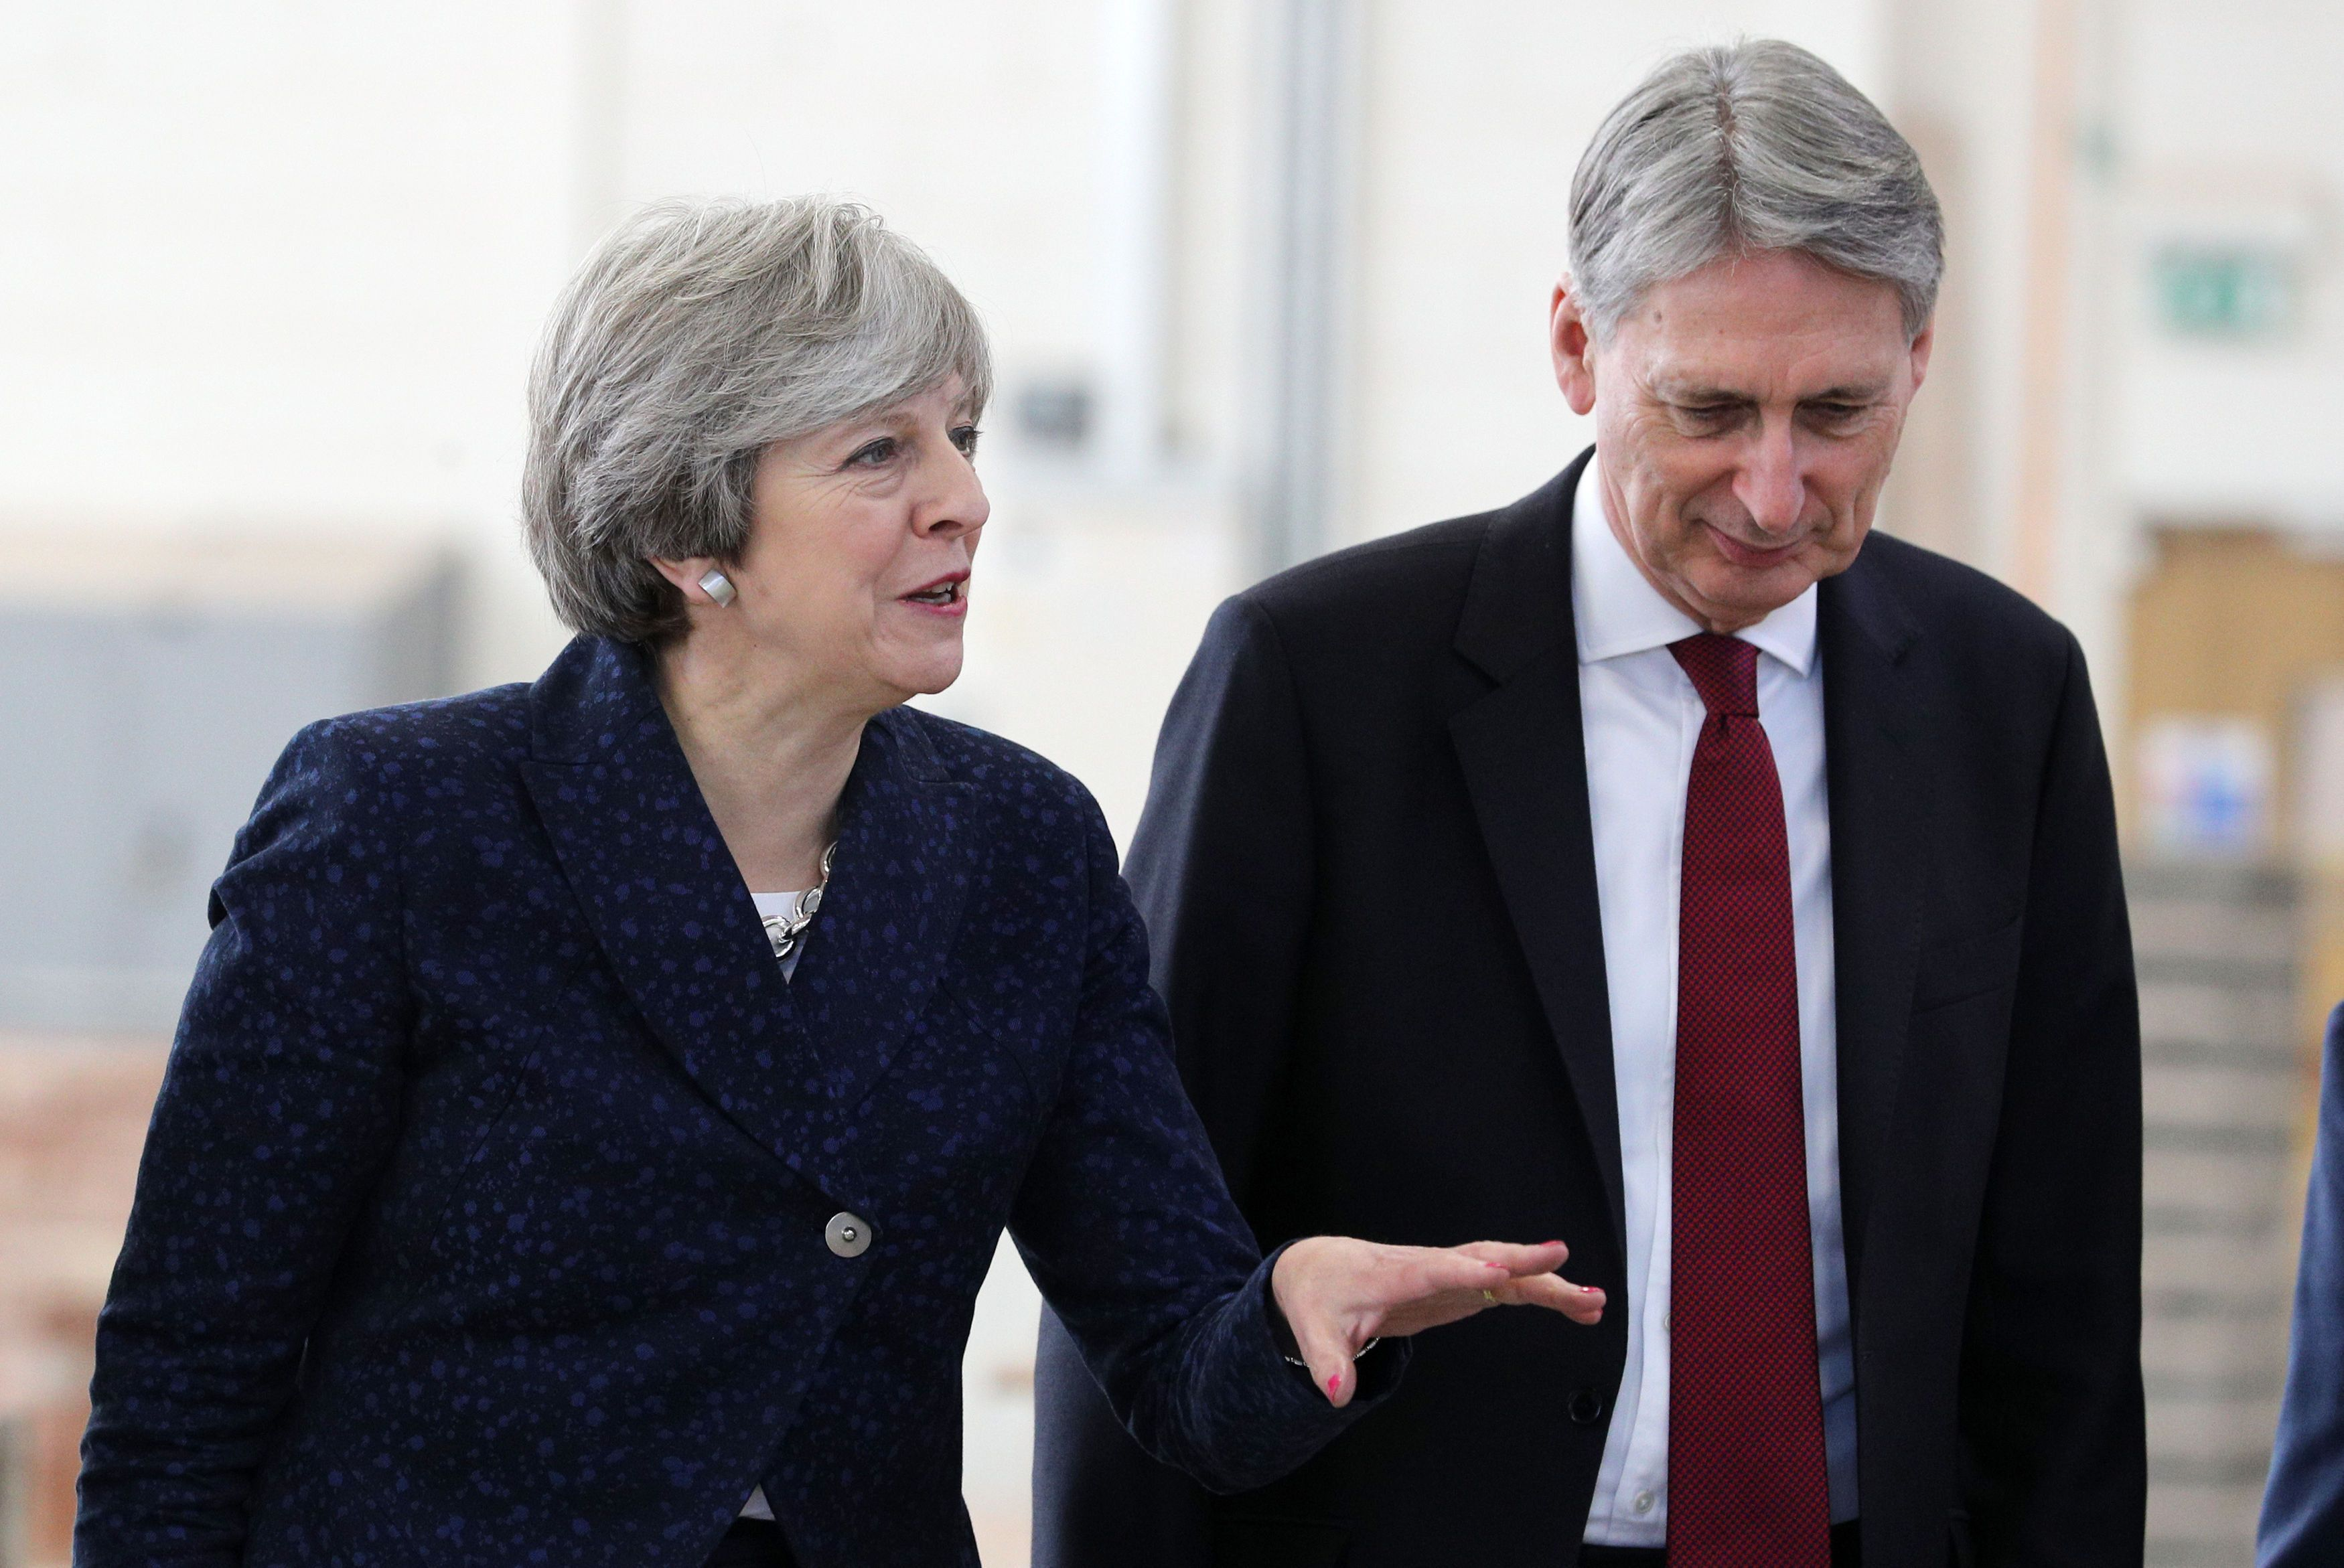 Ministers insist cabinet united over Brexit